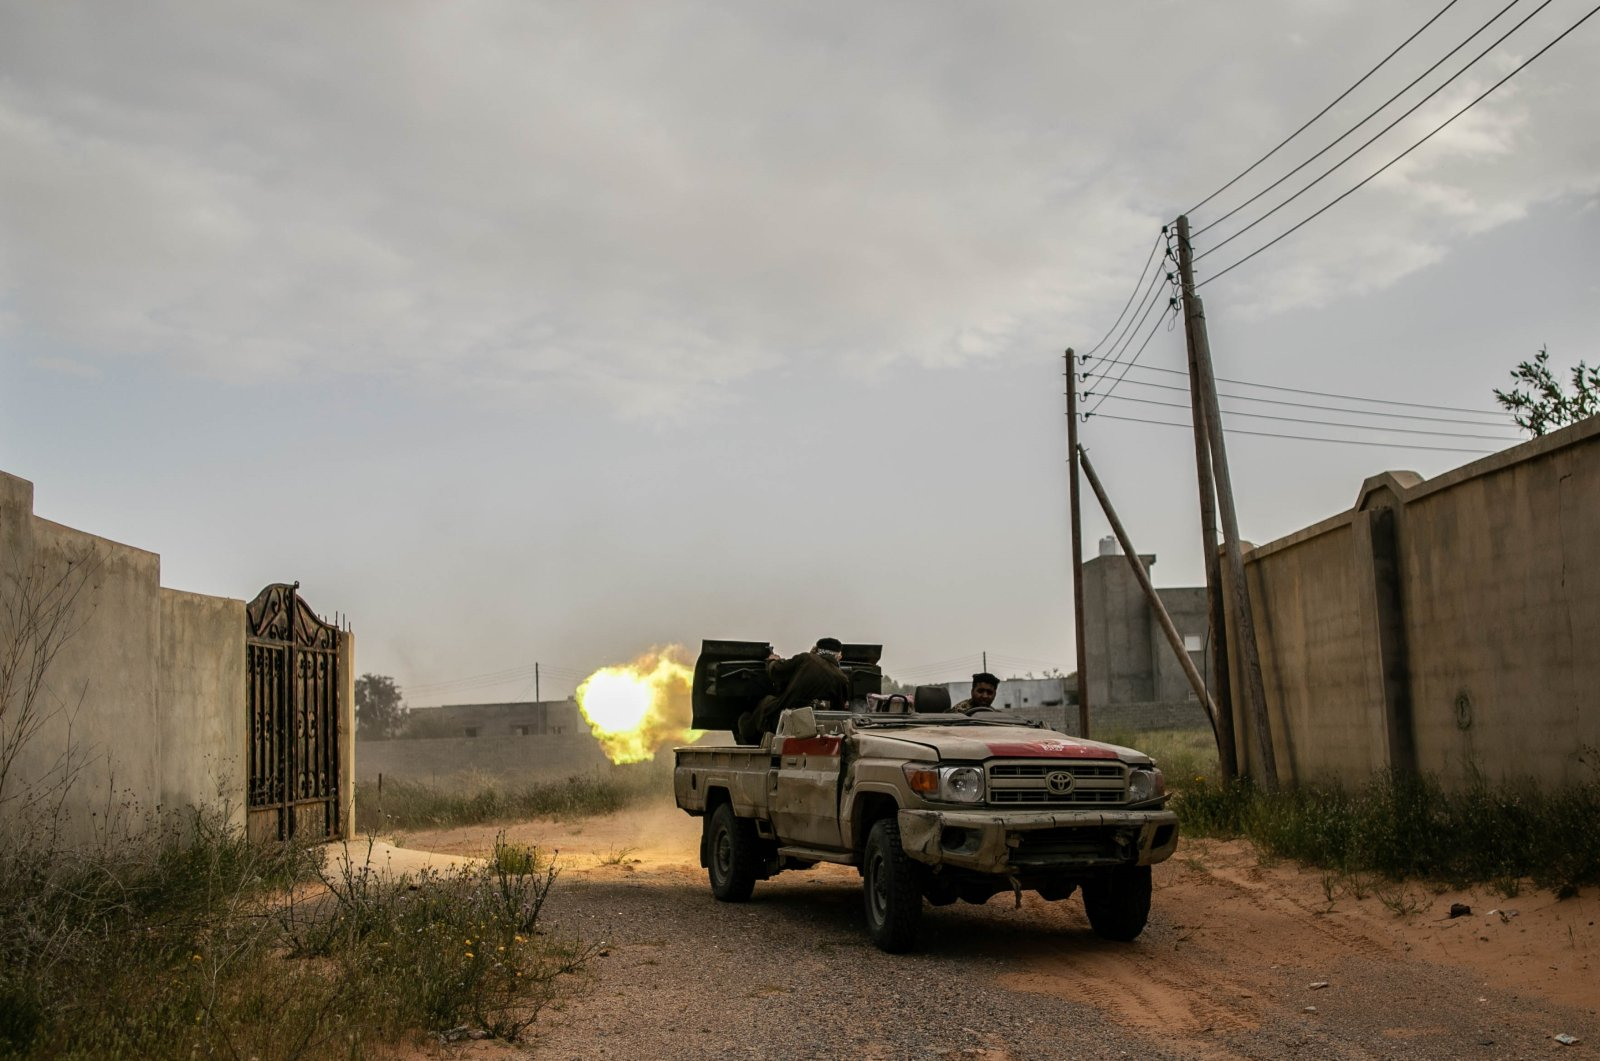 Libya's internationally recognized Government of National Accord launched a military operation on several fronts against putschist Gen. Khalifa Haftar's forces. (AA Photo)